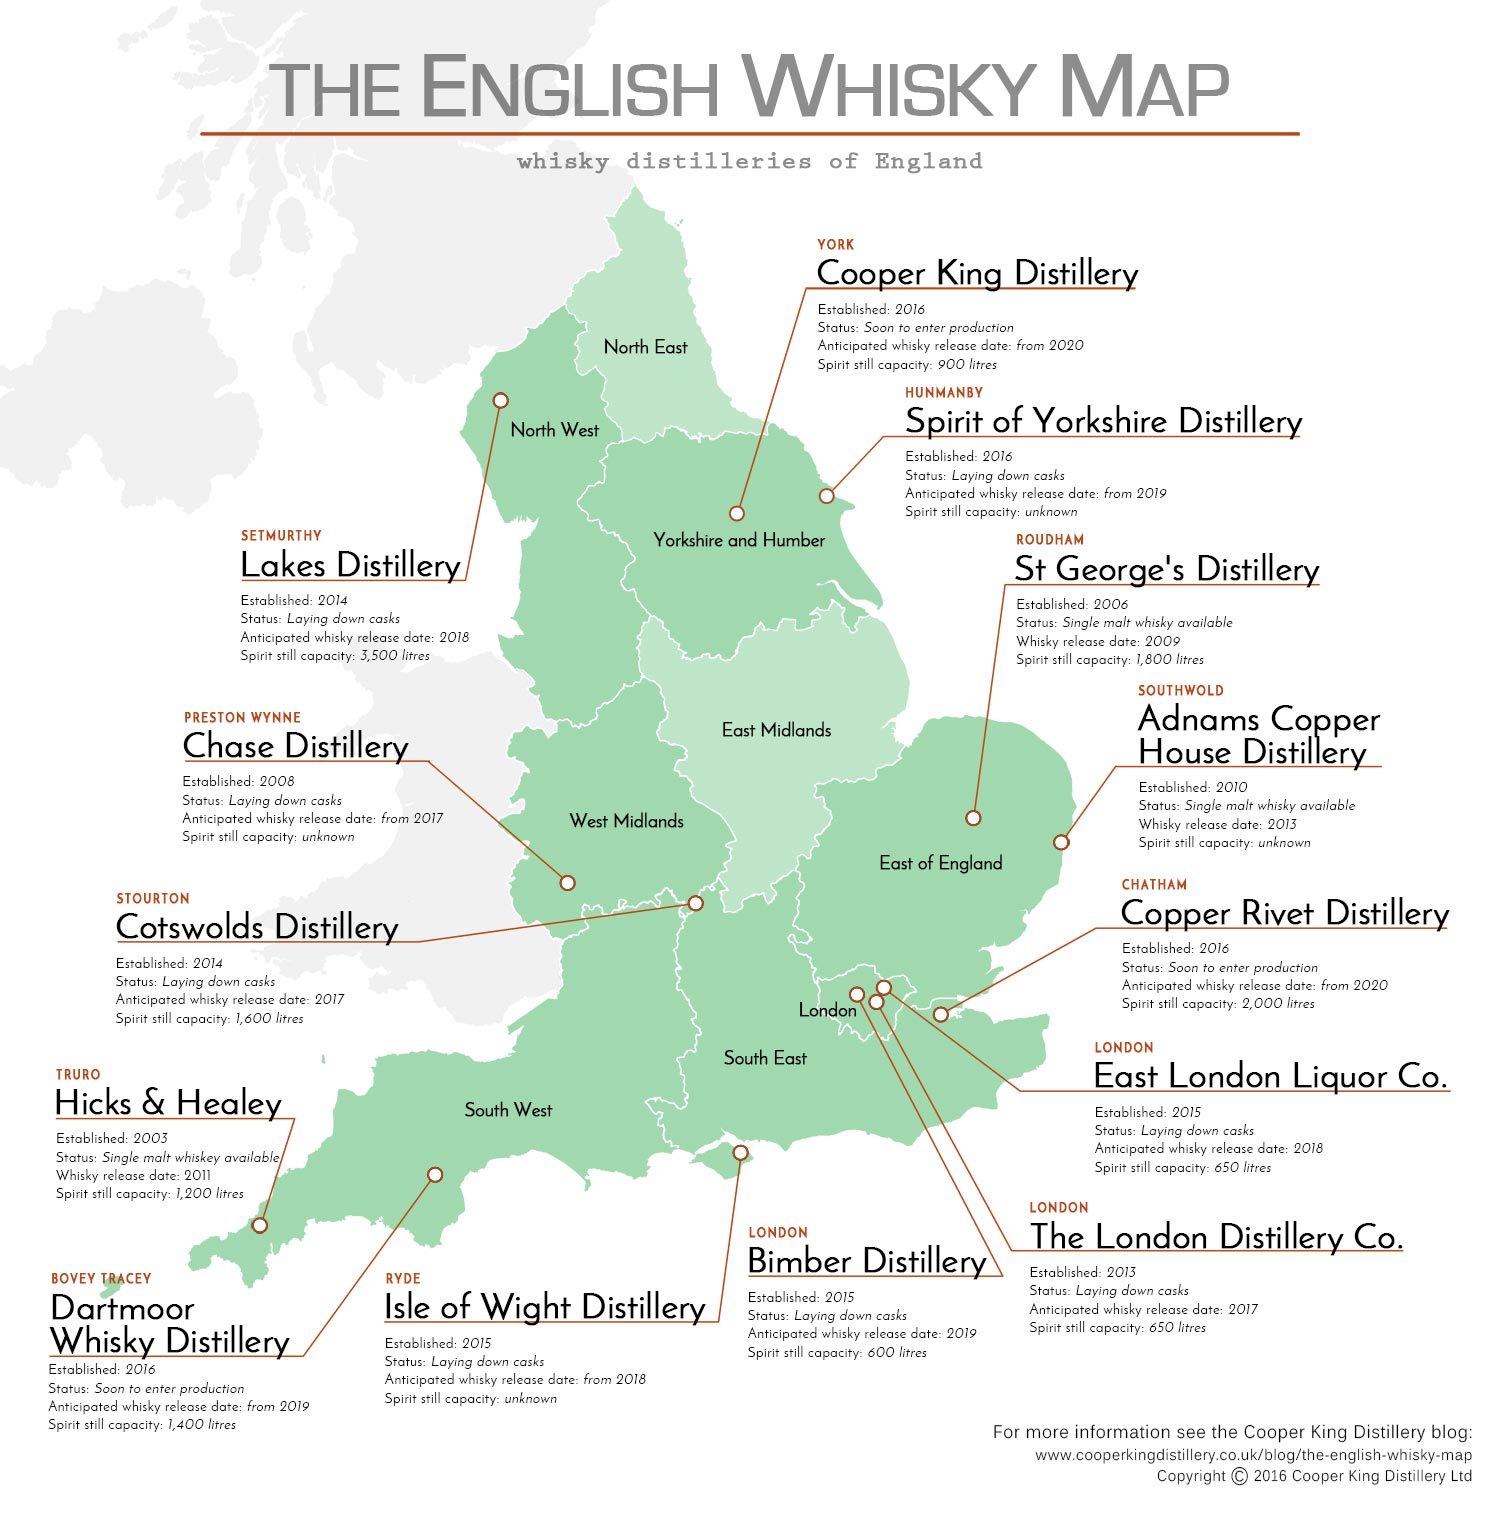 The English Whisky Map — Cooper King Distillery® on counties in england, norwich england, hull england, newcastle england, reading england, northumberland england, cumbria england, norfolk england, world map england, wessex england, sunderland england, lincolnshire england, blackpool england, cornwall england, leeds england, broadchurch england, hastings england, castles in england, wiltshire england, surrey england,